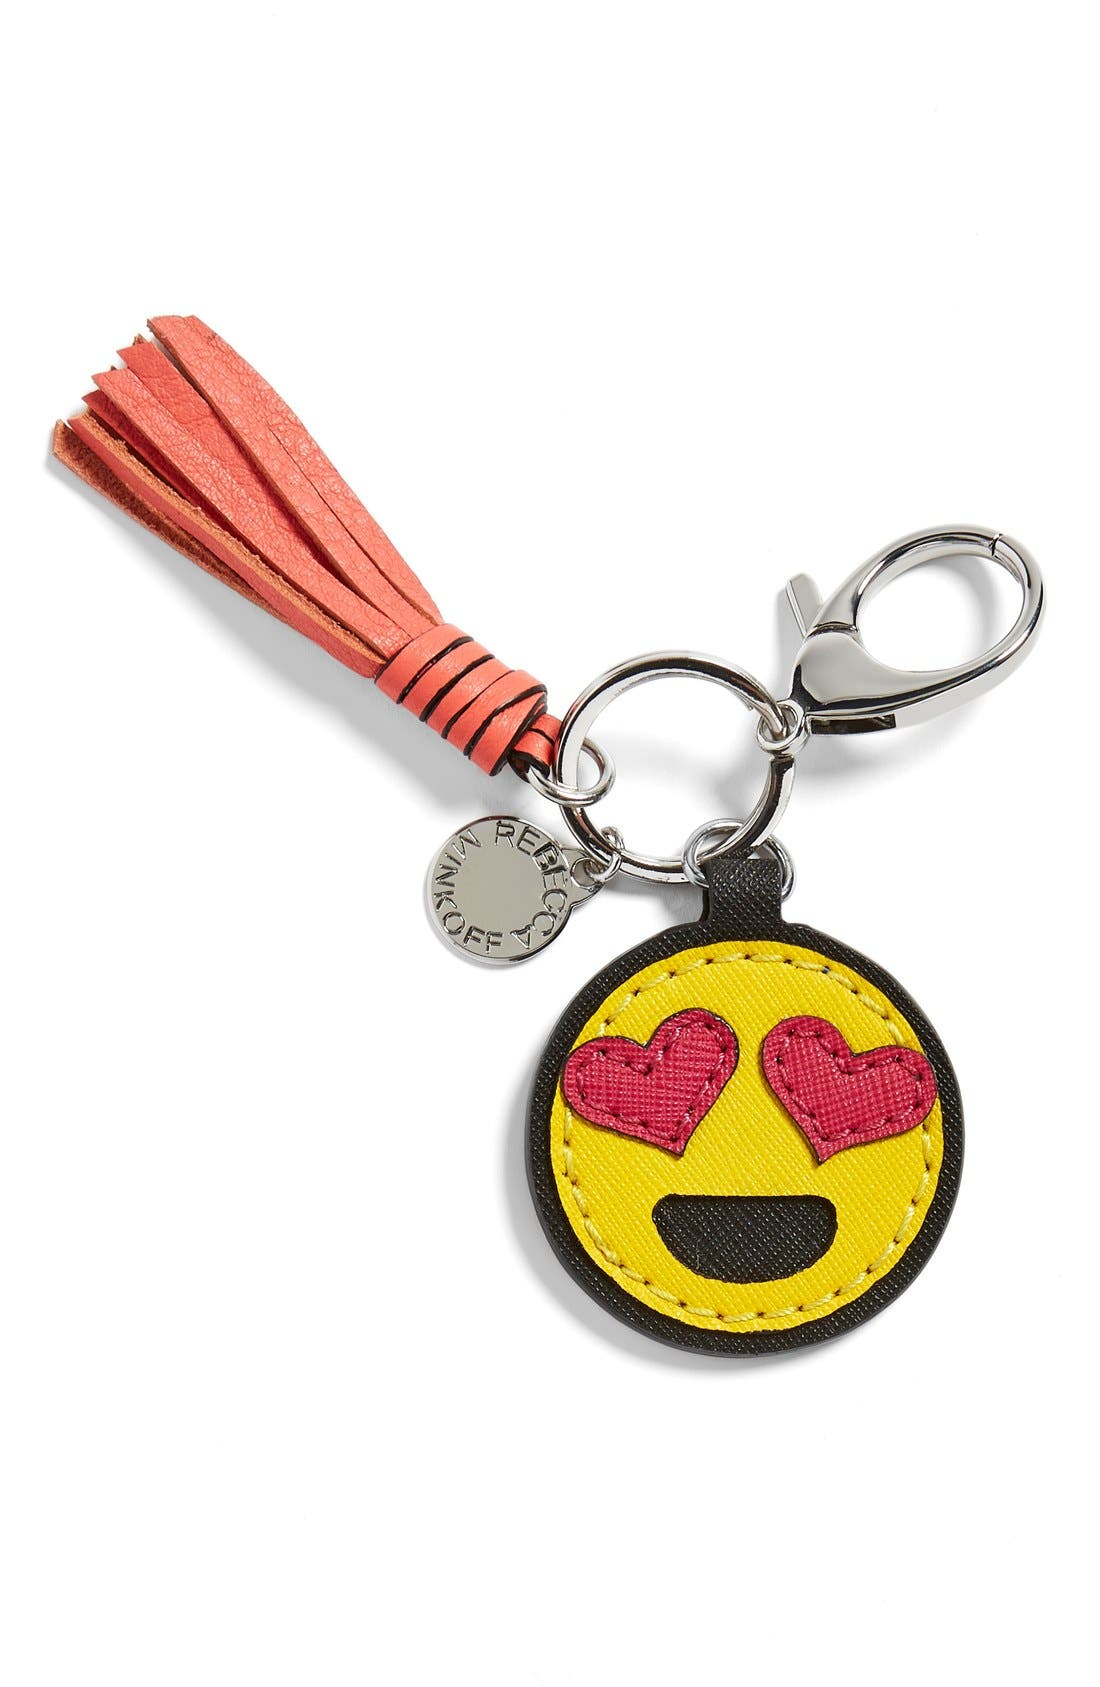 'Hubba Hubba' Bag Charm,                             Main thumbnail 1, color,                             700